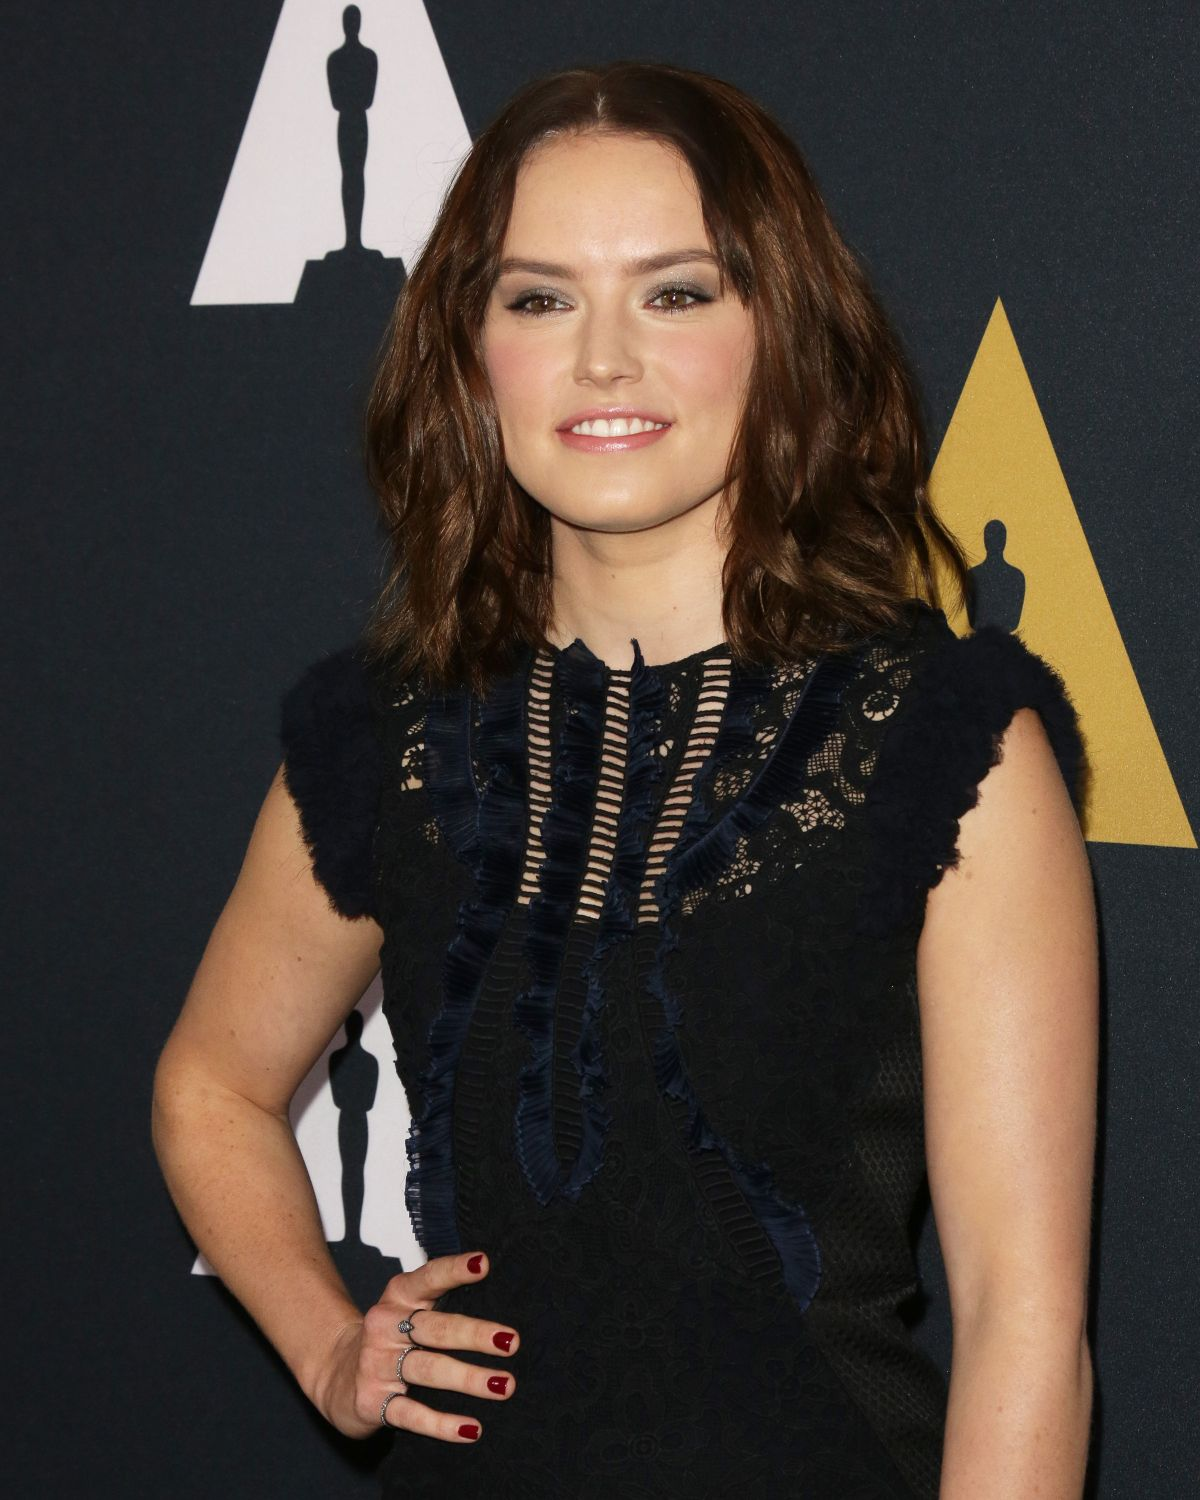 DAISY RIDLEY at Student Academy Awards in Los Angeles 09/22/2016